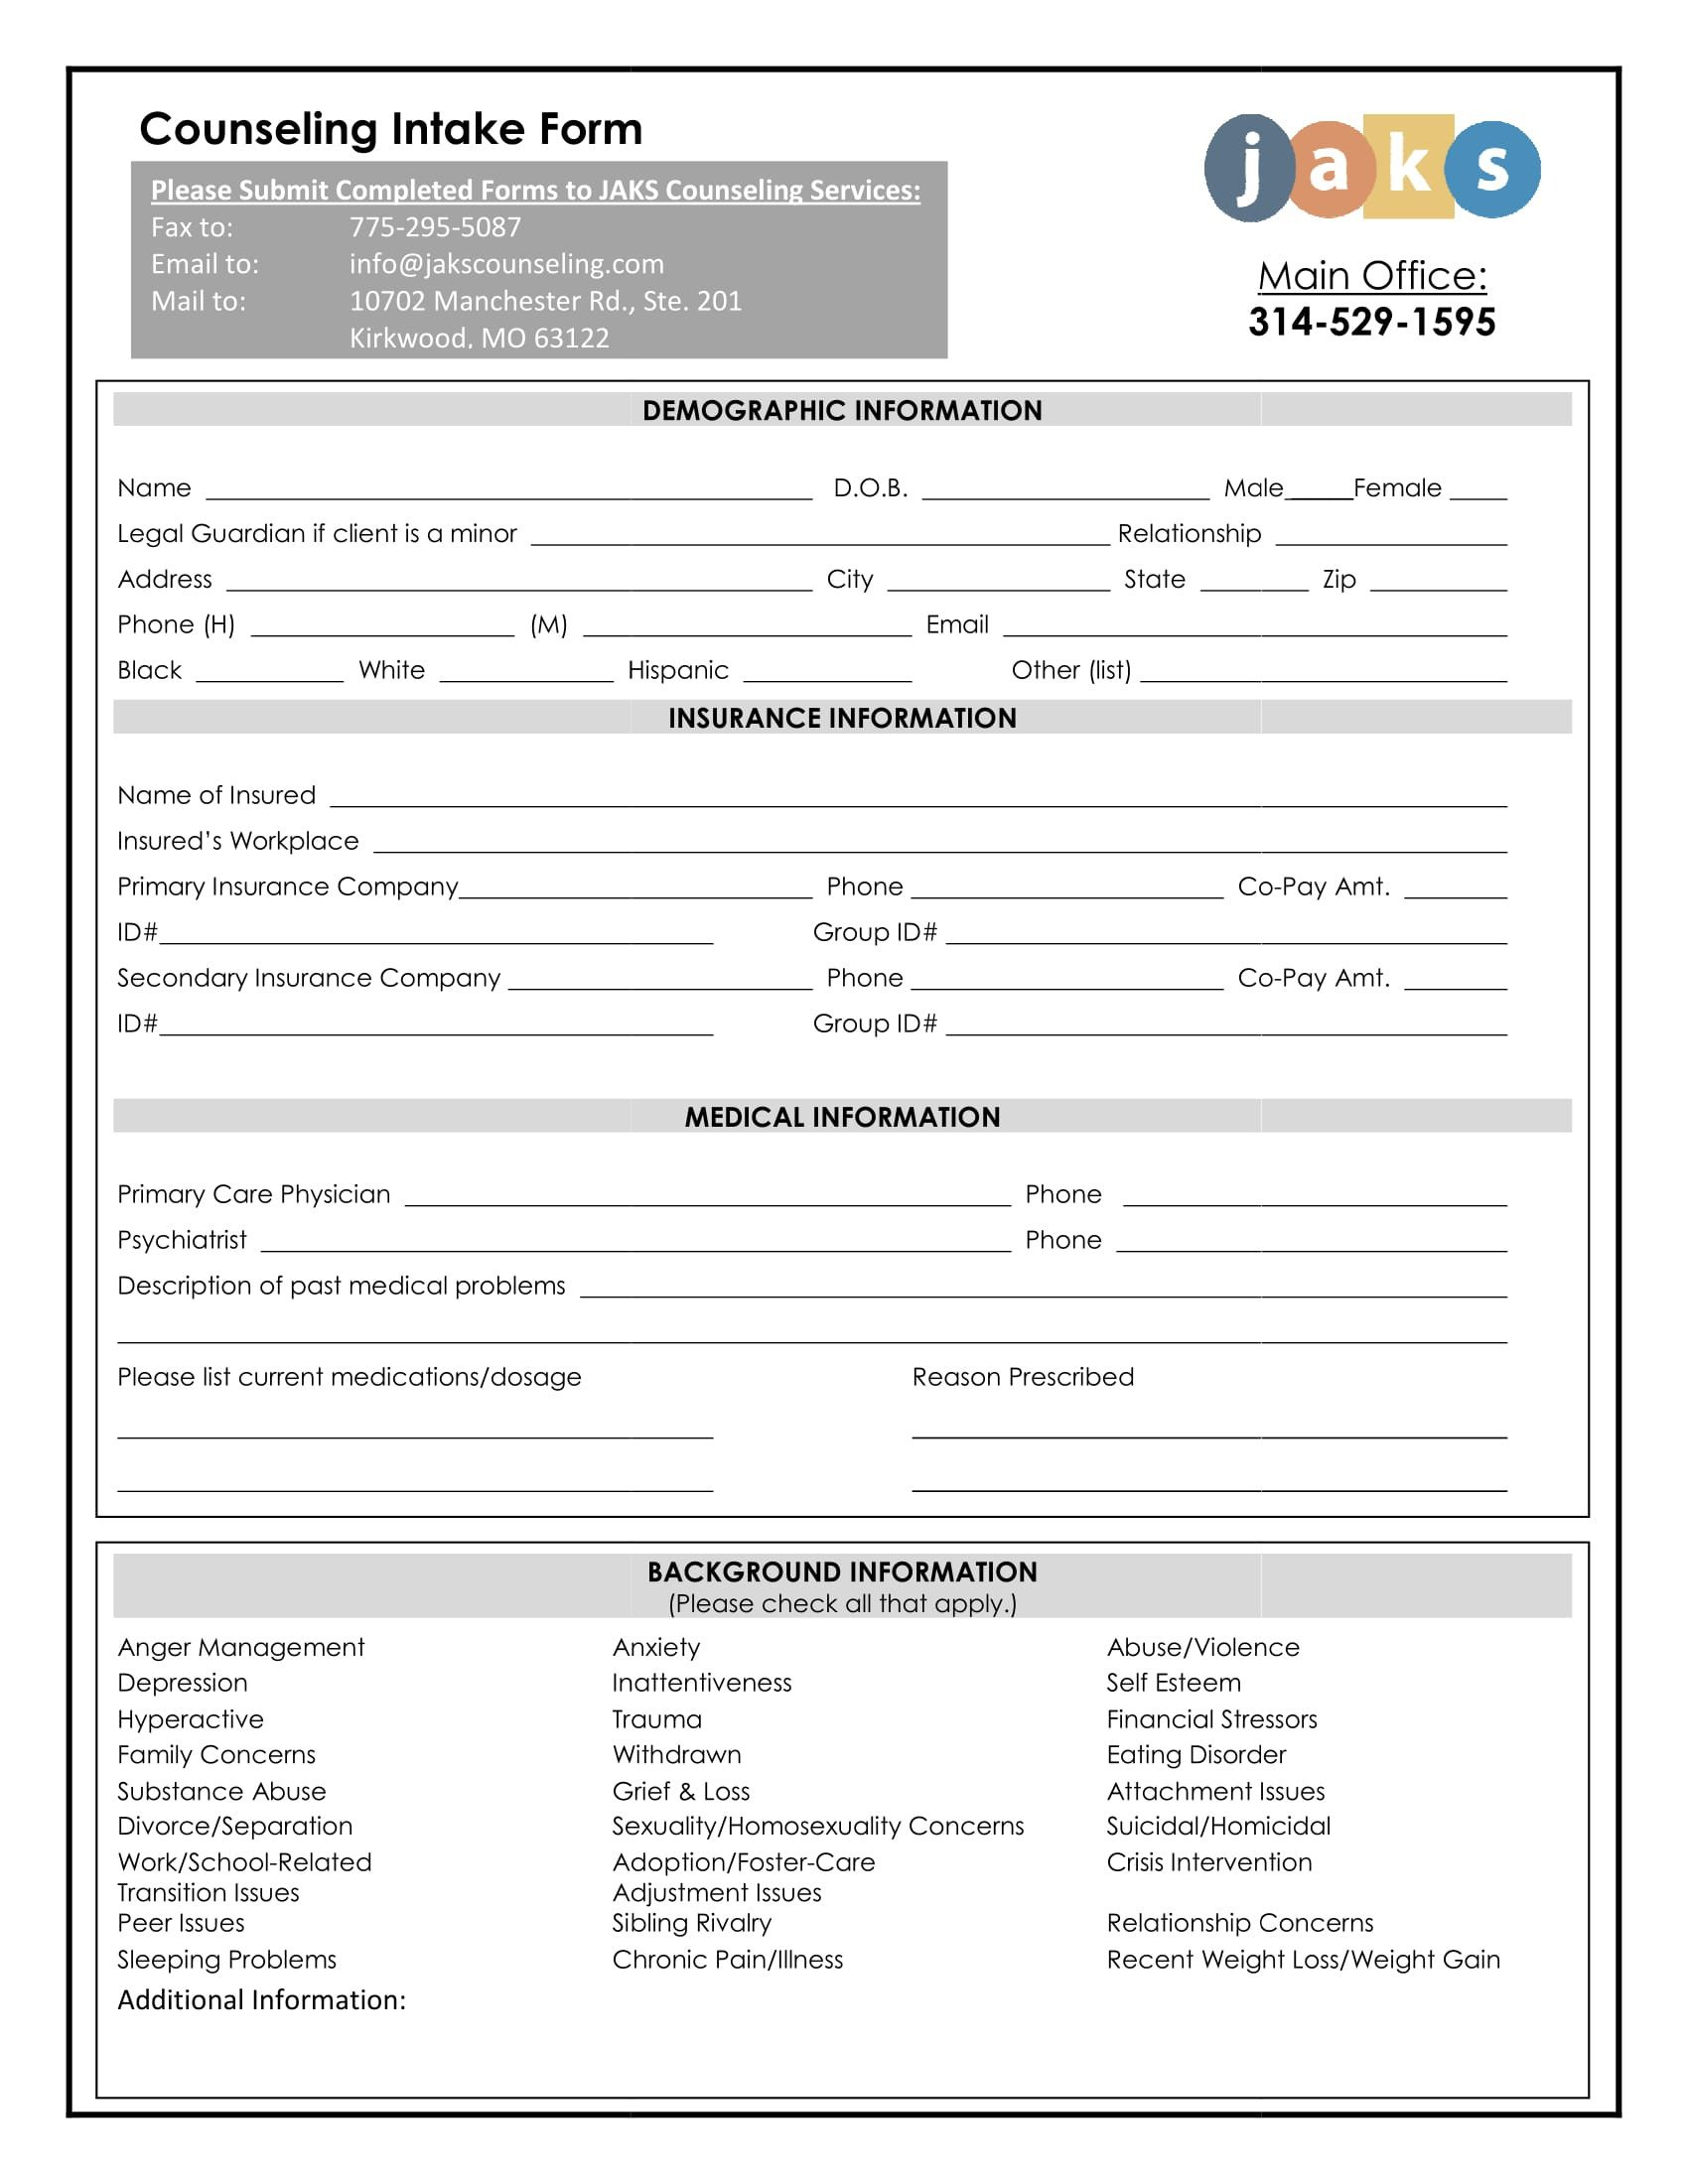 Counseling Intake form Template Benefits Of Using Intake forms for Medication Treatments